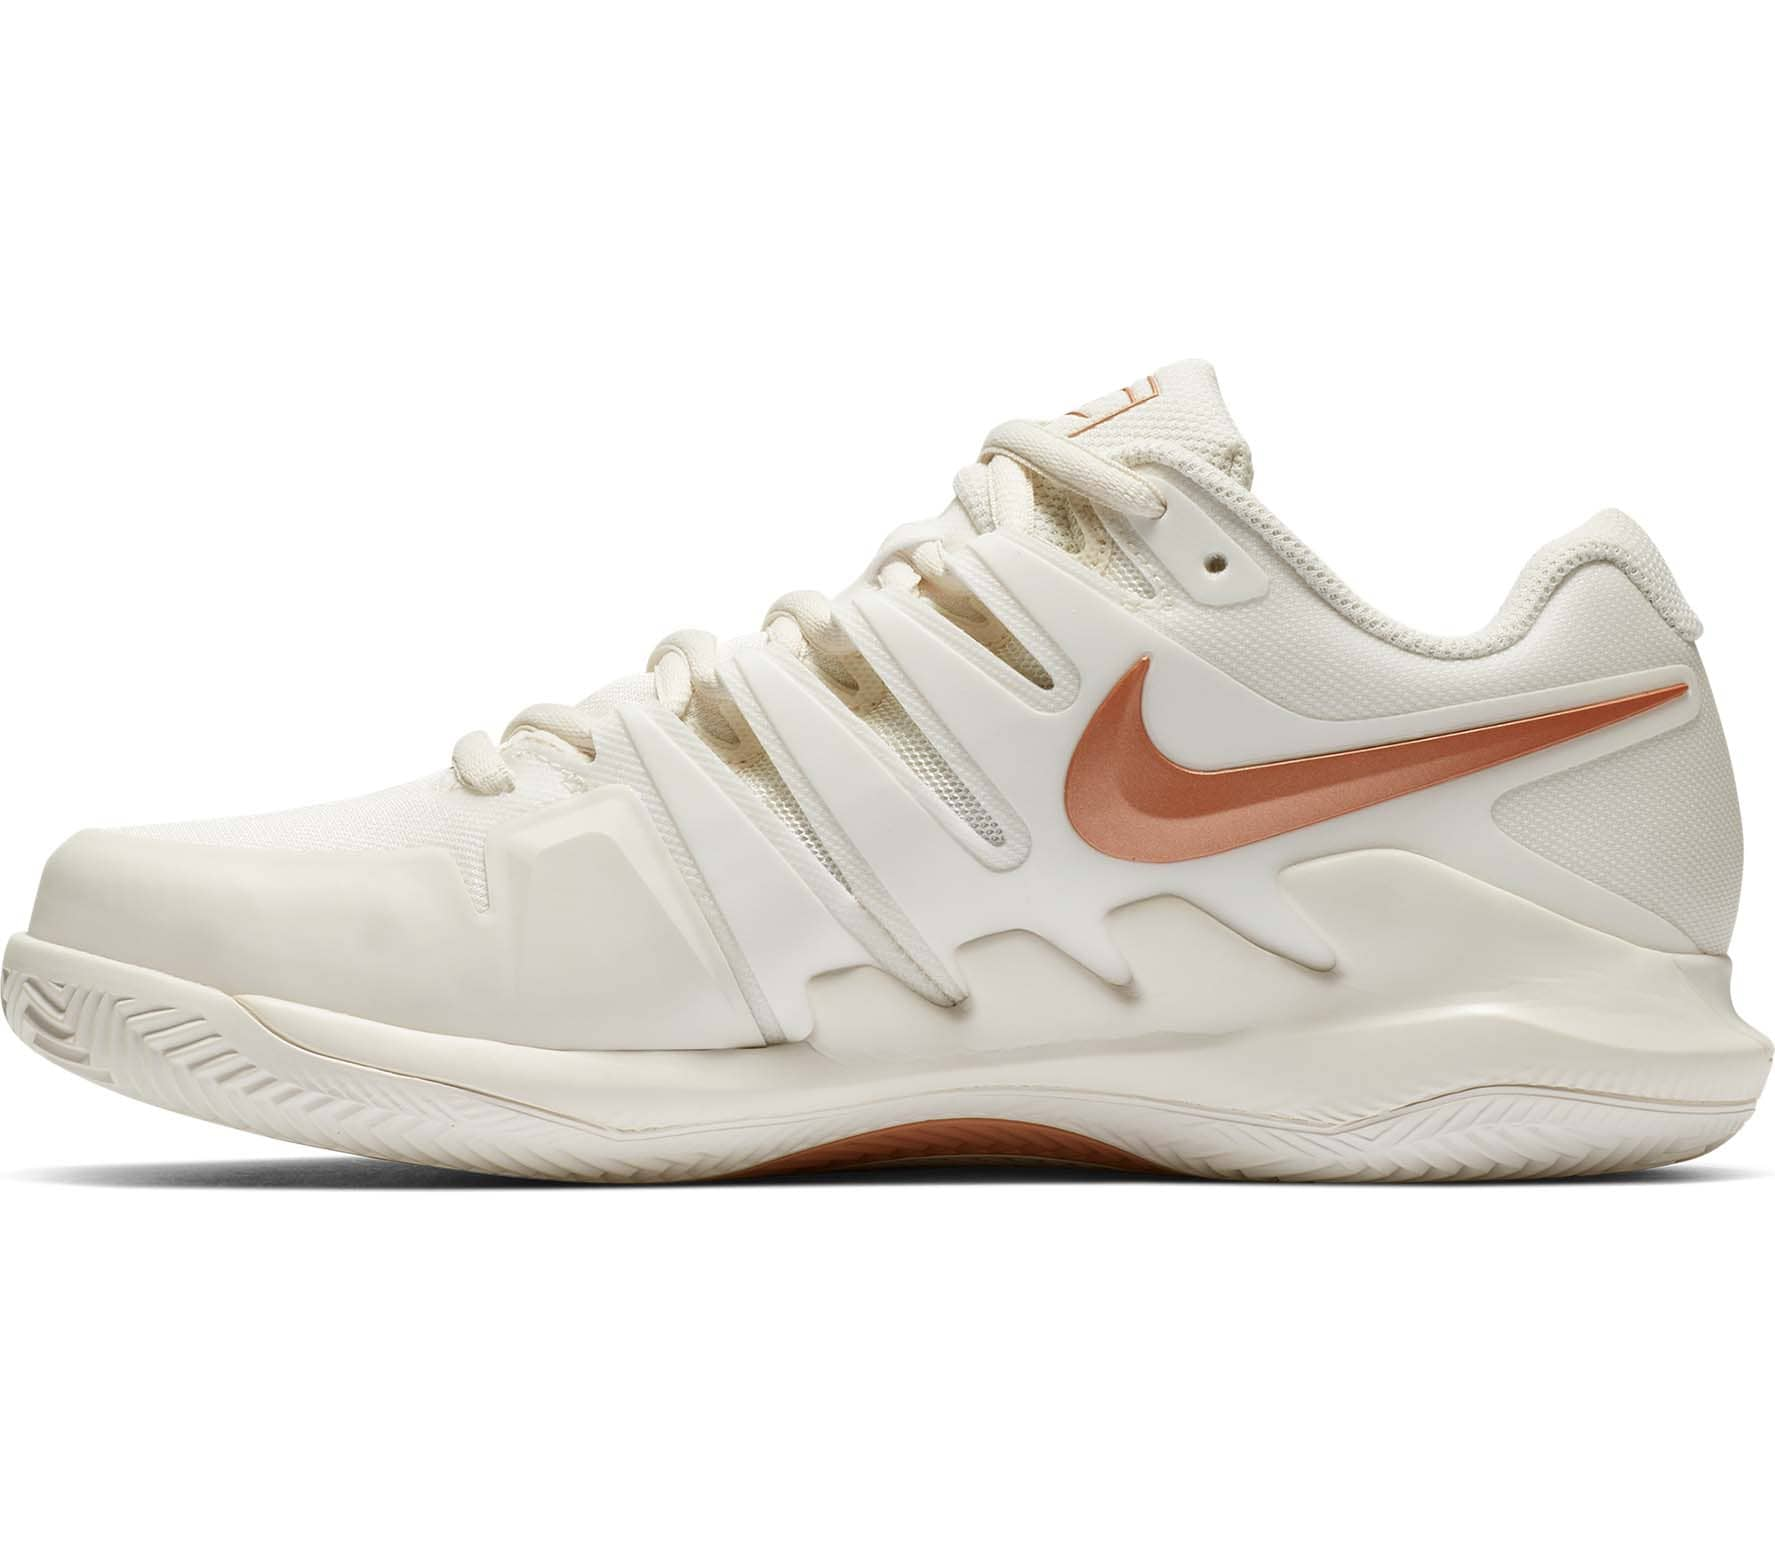 reputable site ea626 66a34 Nike - Air Zoom Vapor X Clay Damen Tennisschuh (beigegold)